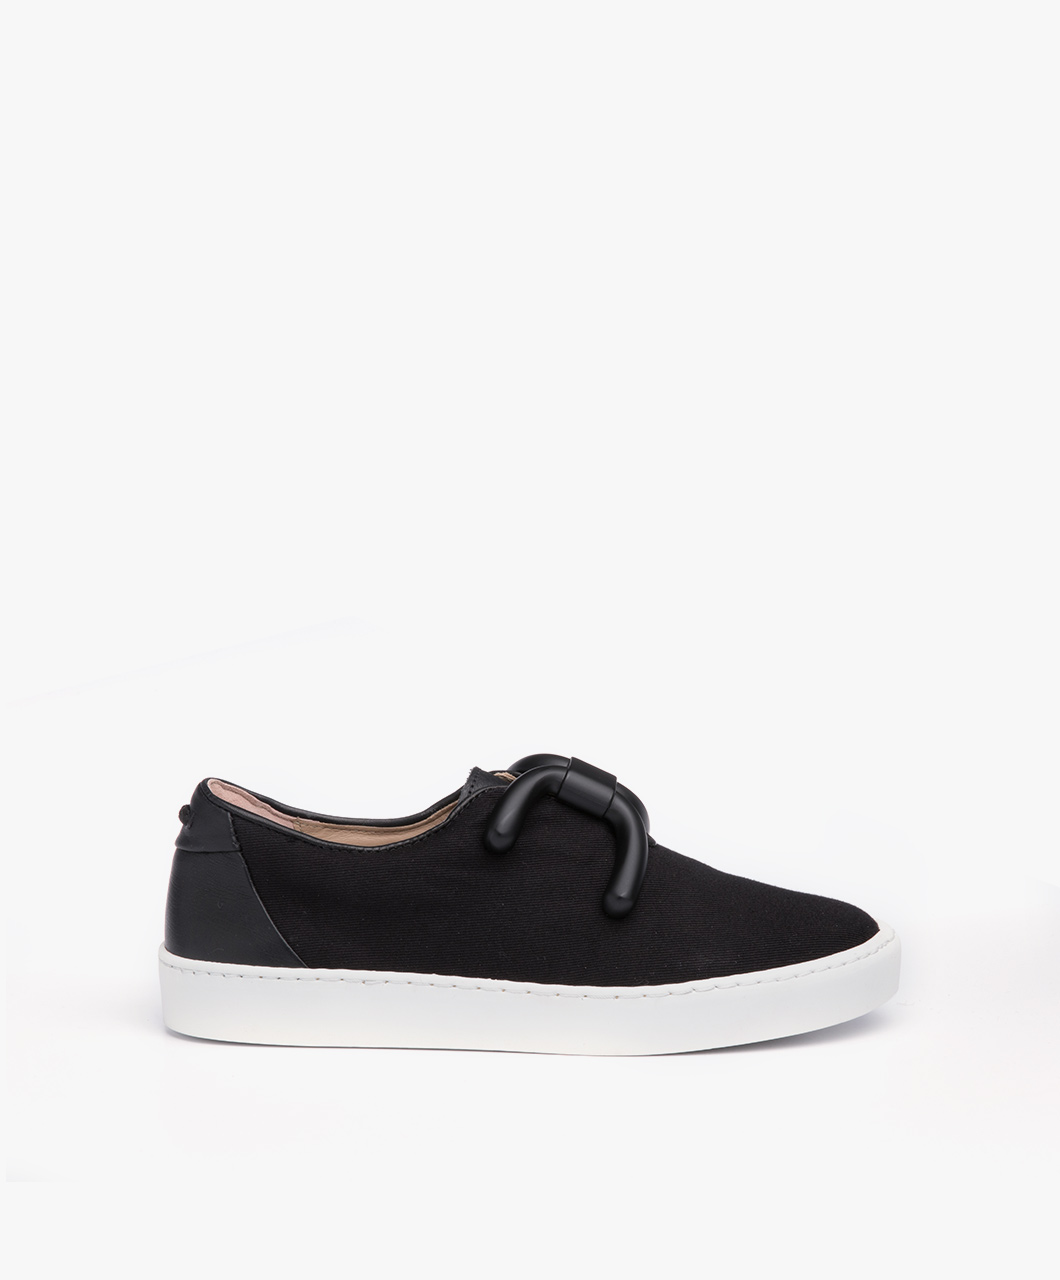 Immagine di An Hour And A Shower Sneakers Livia Low in Black Canvas